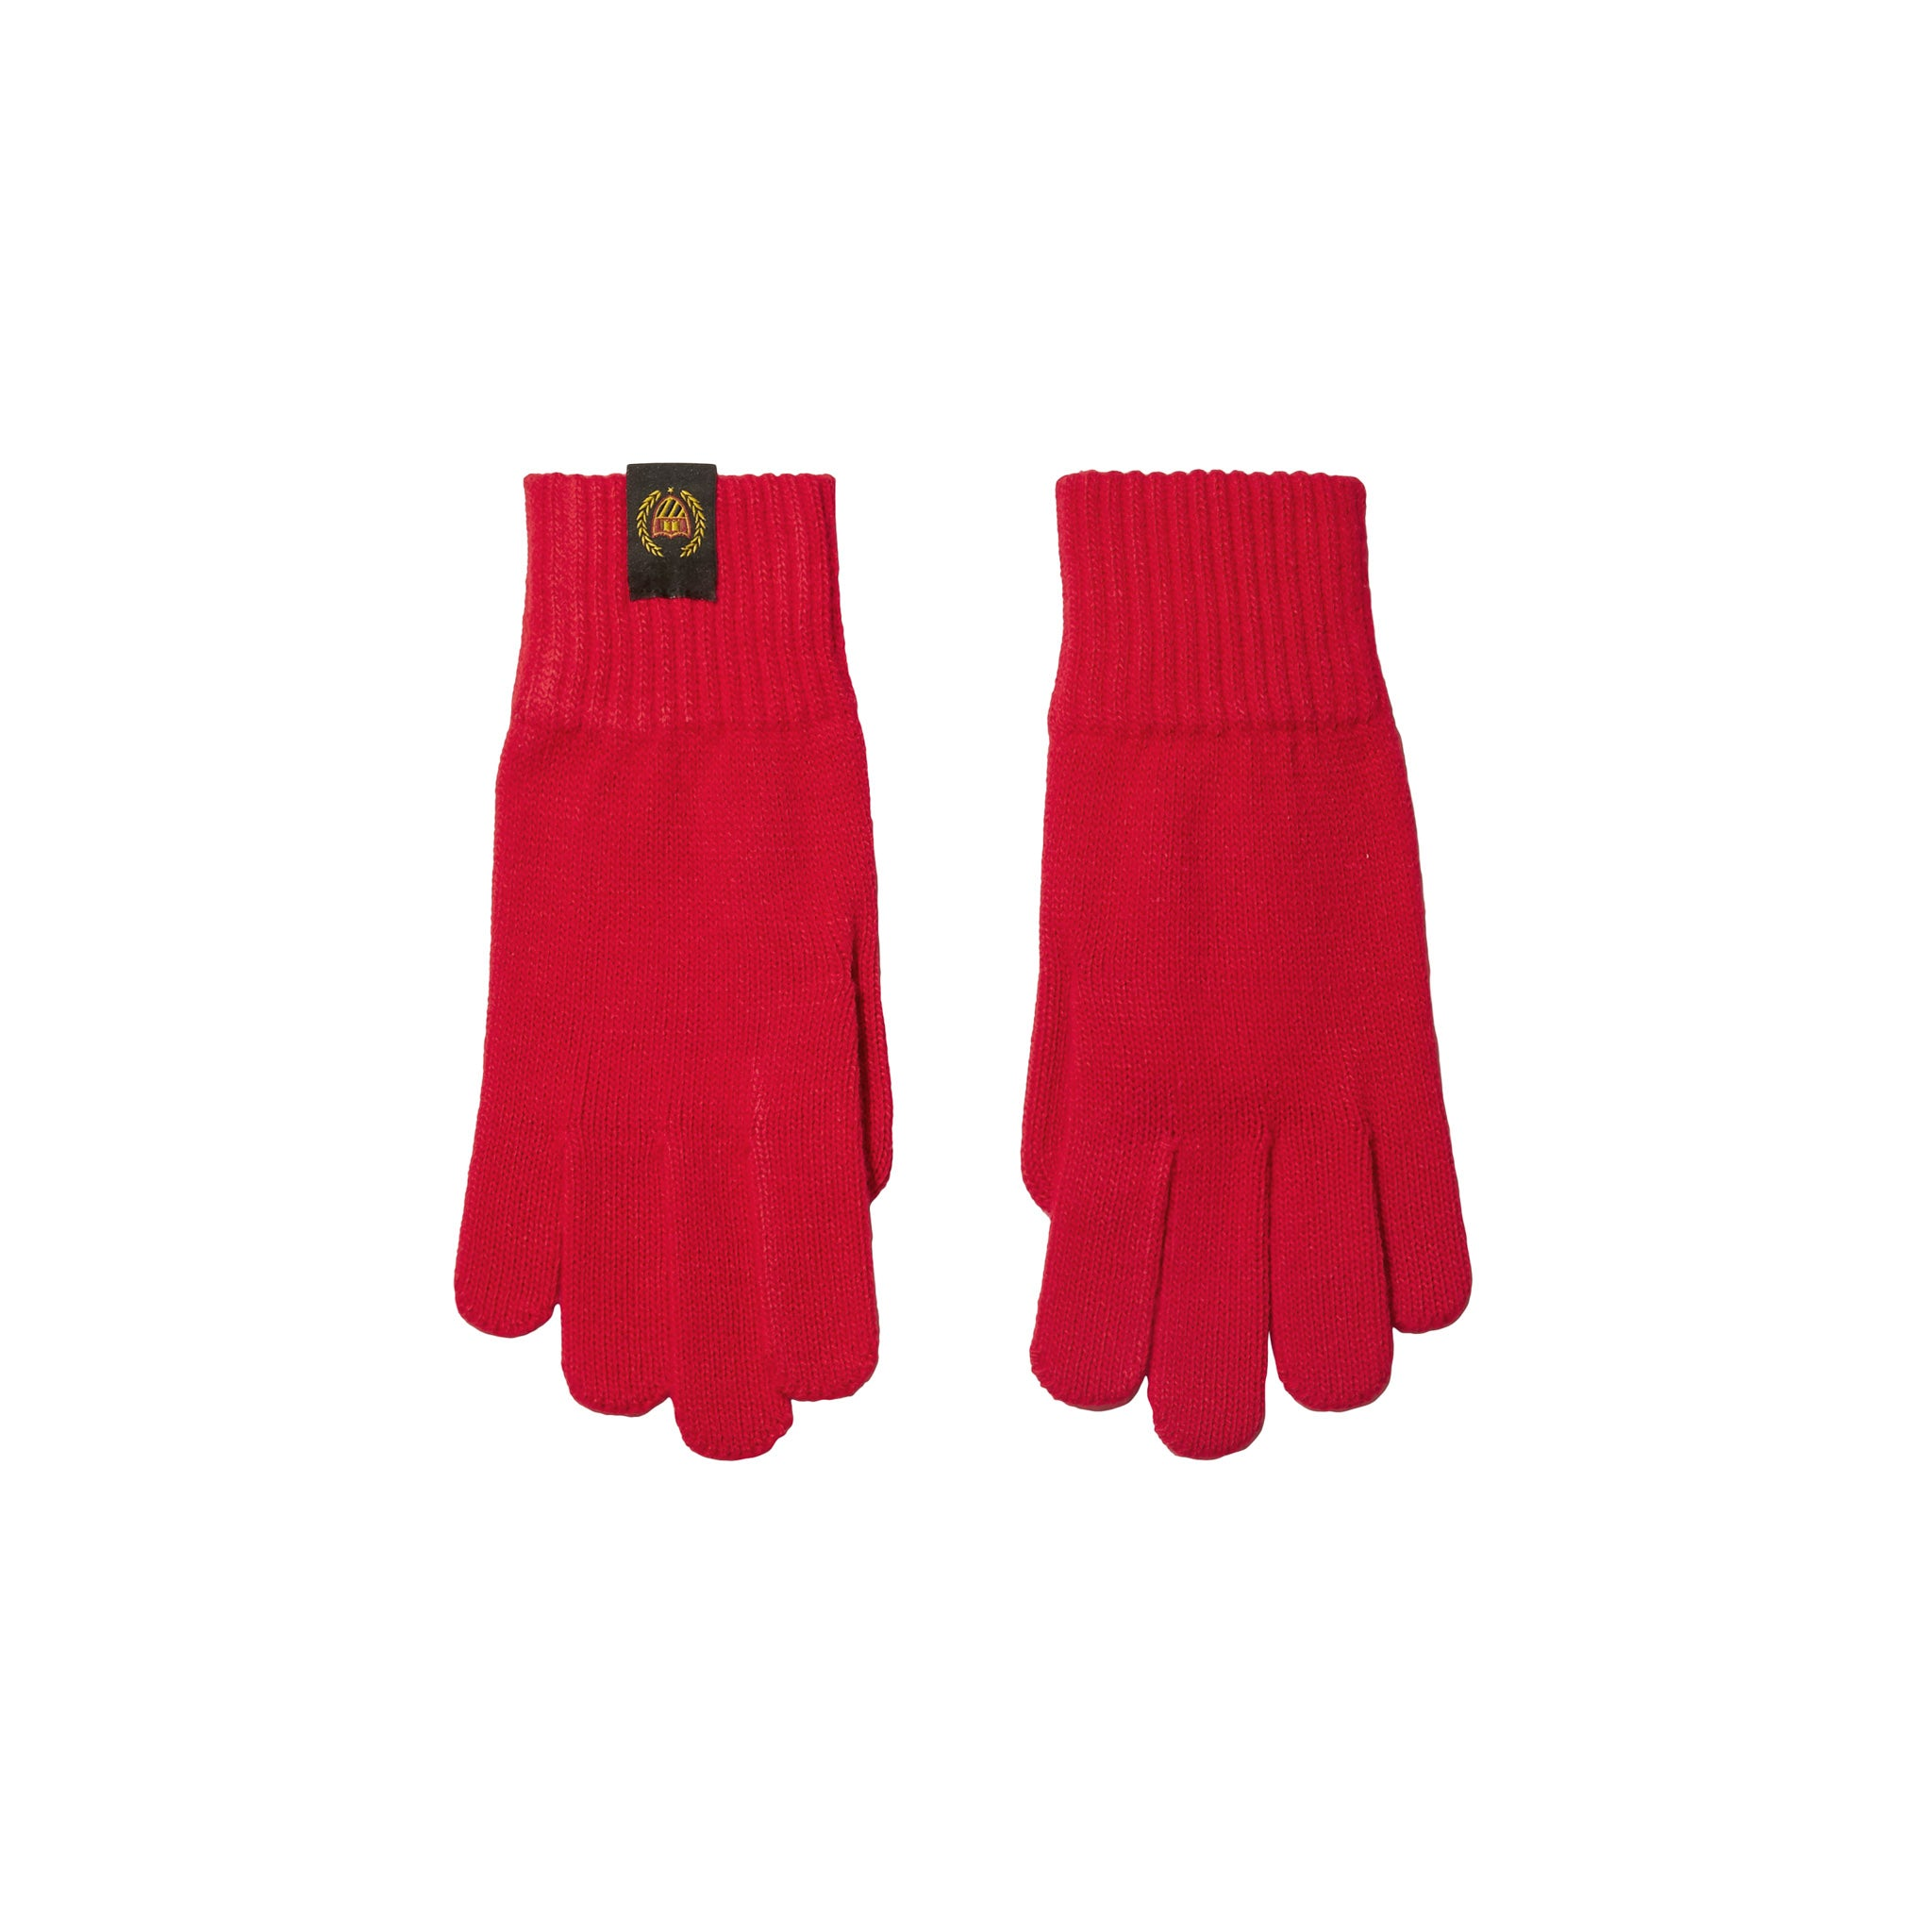 Academy crest Gloves - ACADEMY RED